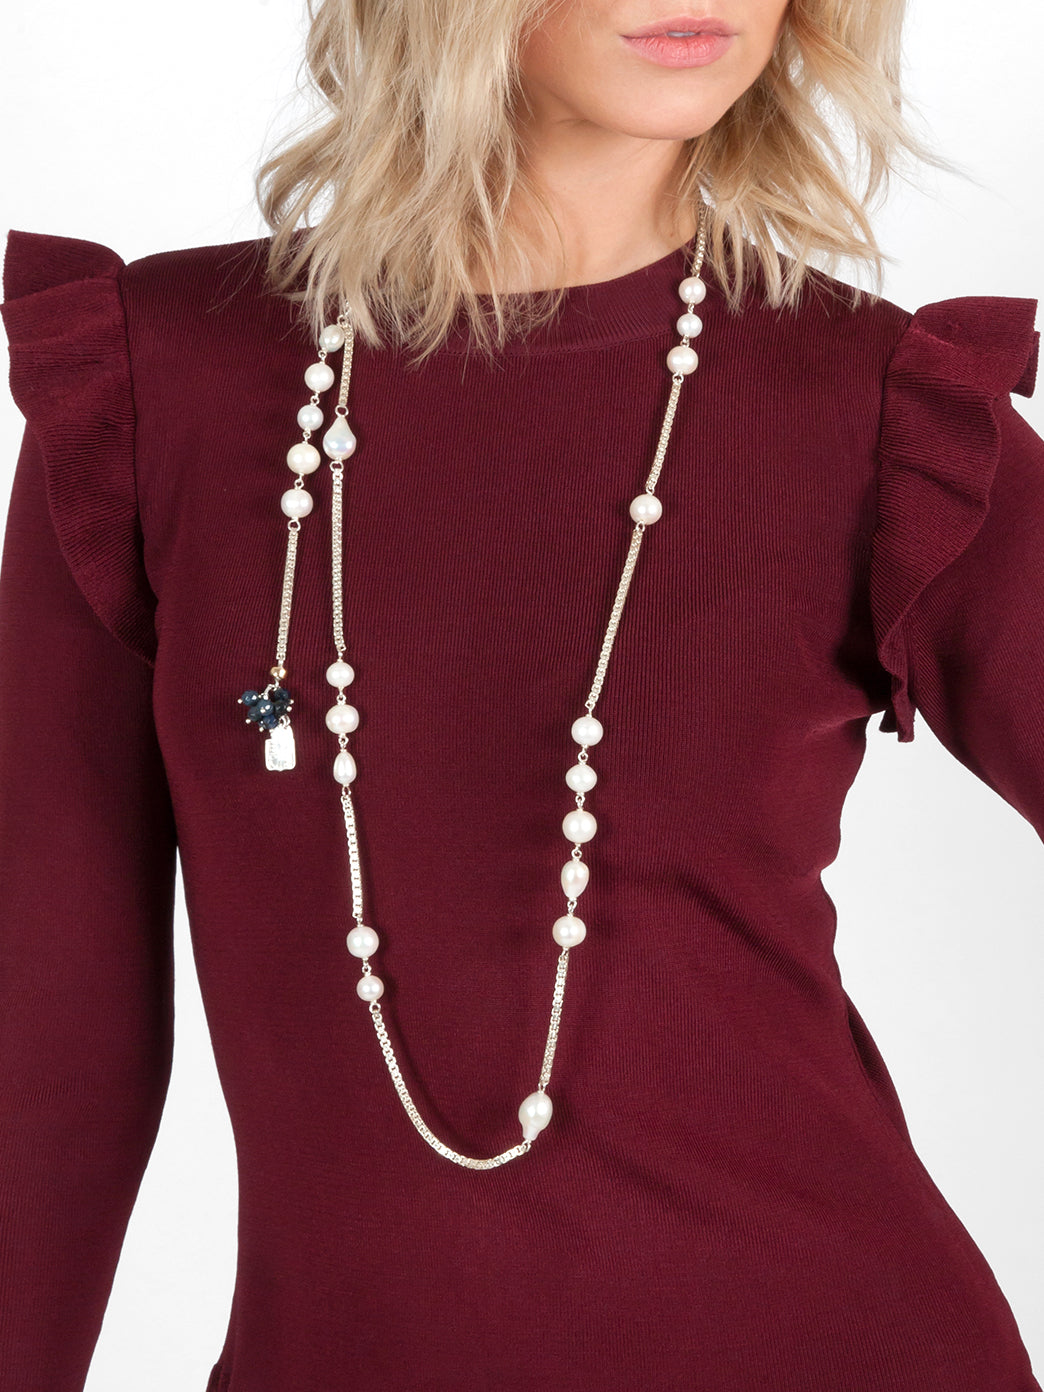 Fiorina Jewellery Birthday Necklace Pearl Model Front